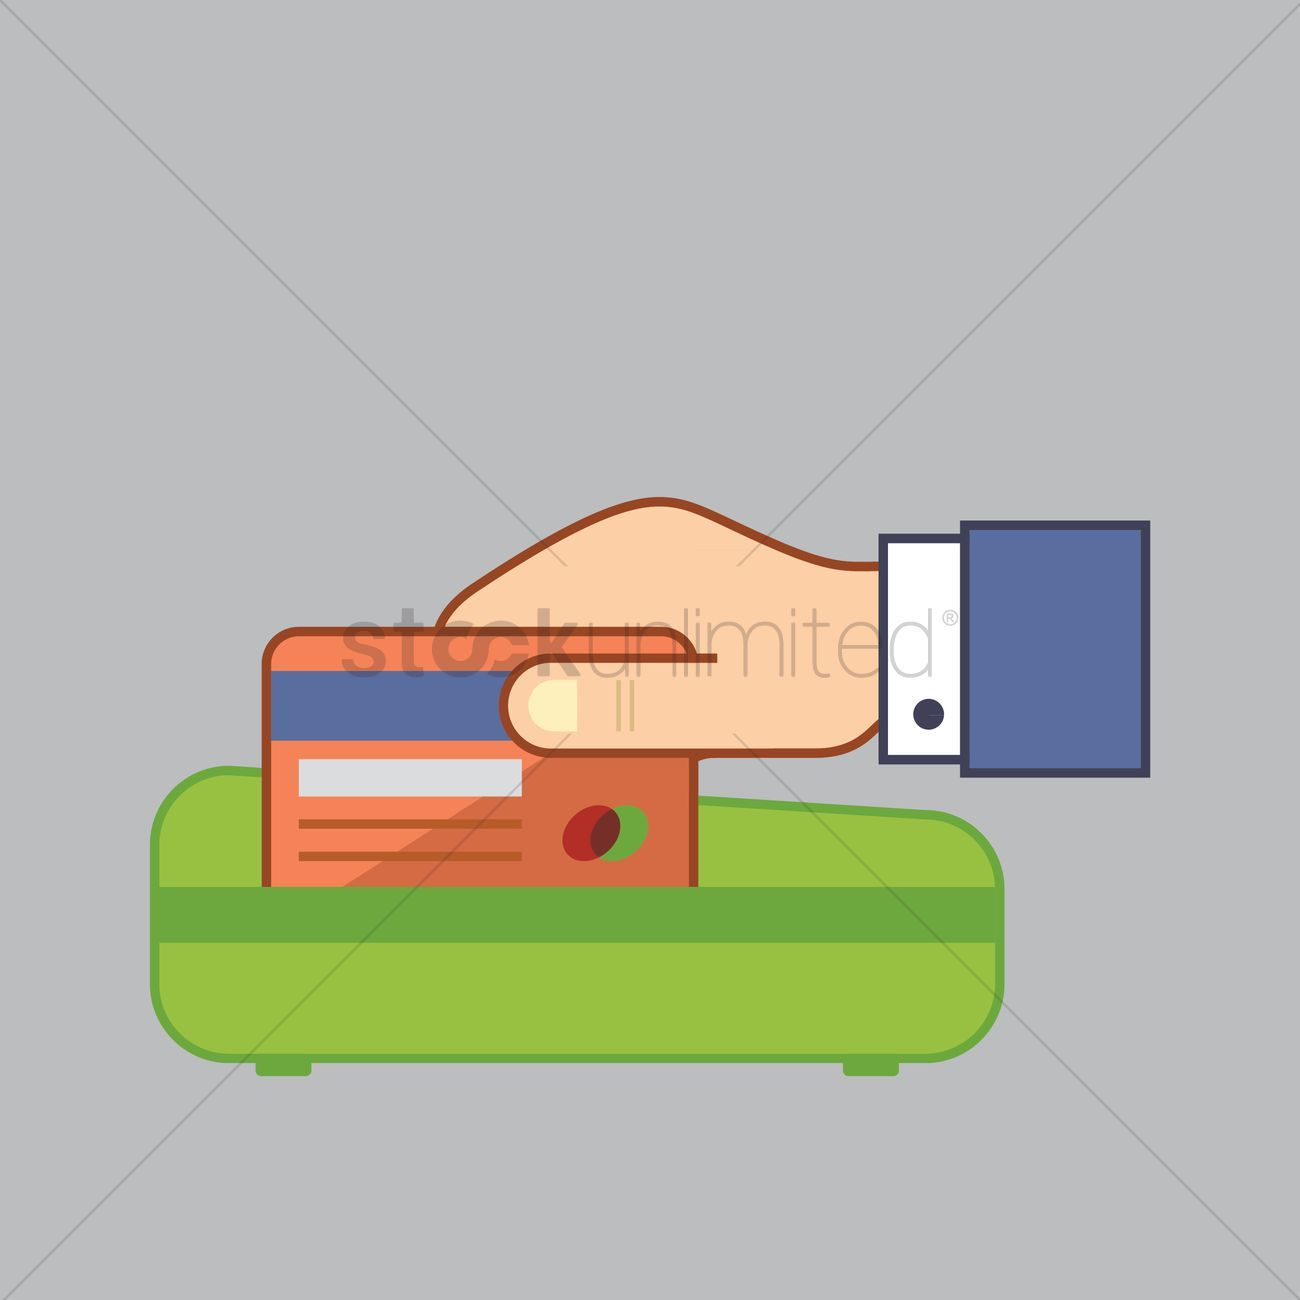 37++ Credit card payment clipart information